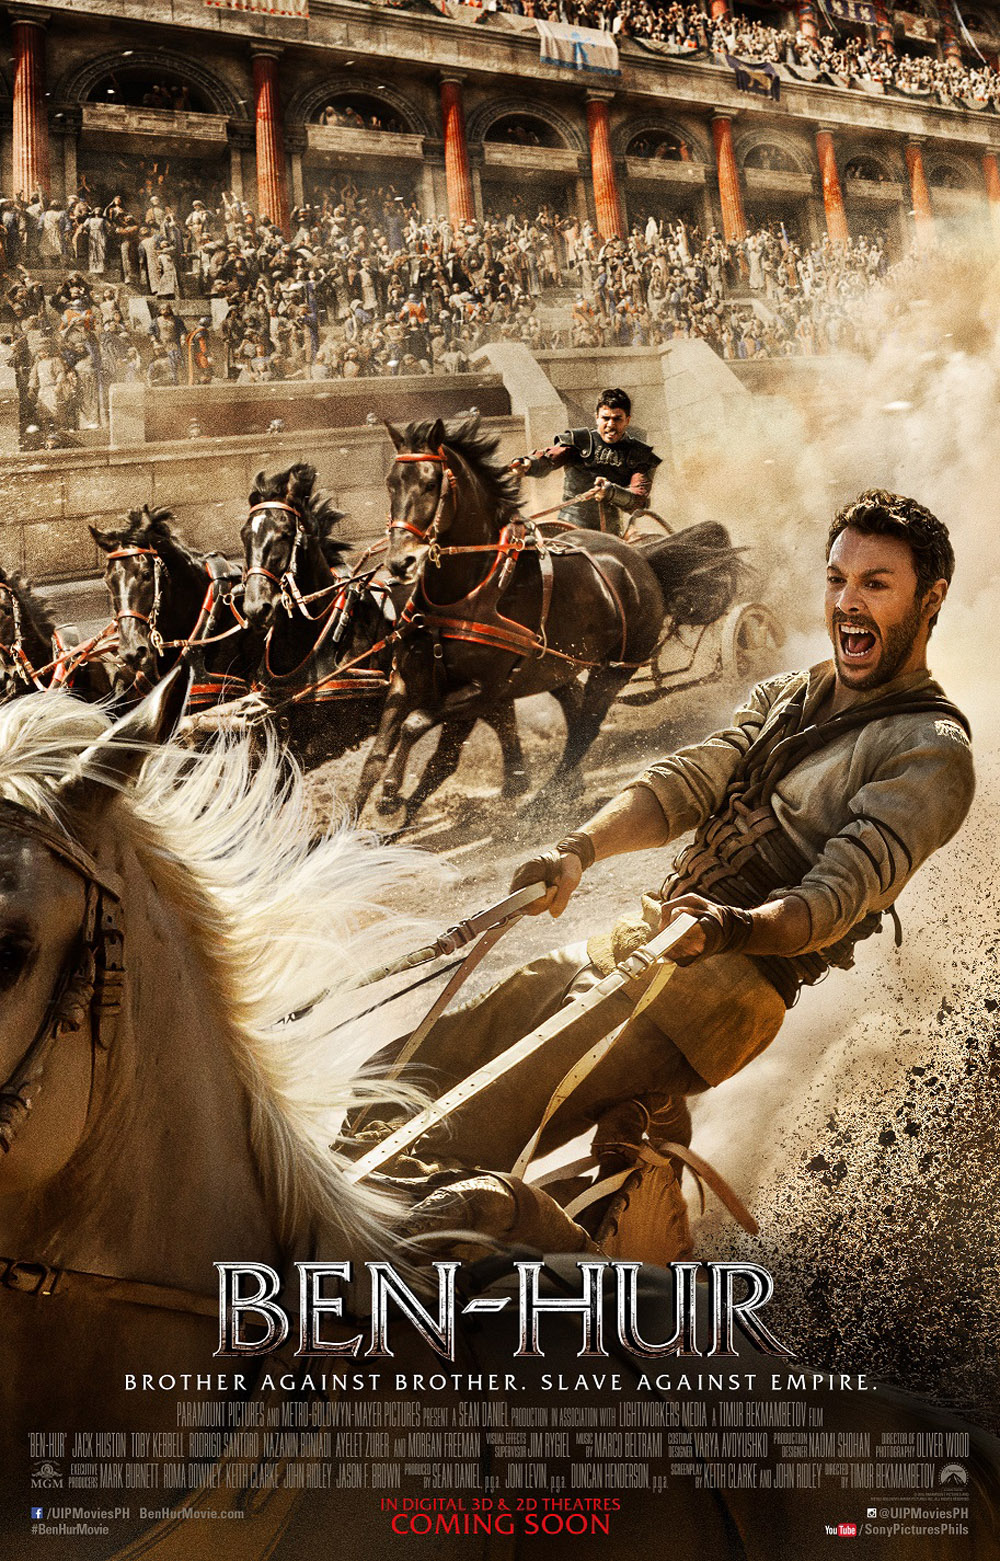 pcheng photography movie review ben hur growing up in a devout catholic household and studying in catholic schools from pre school to college i have always hear about the r occupation in